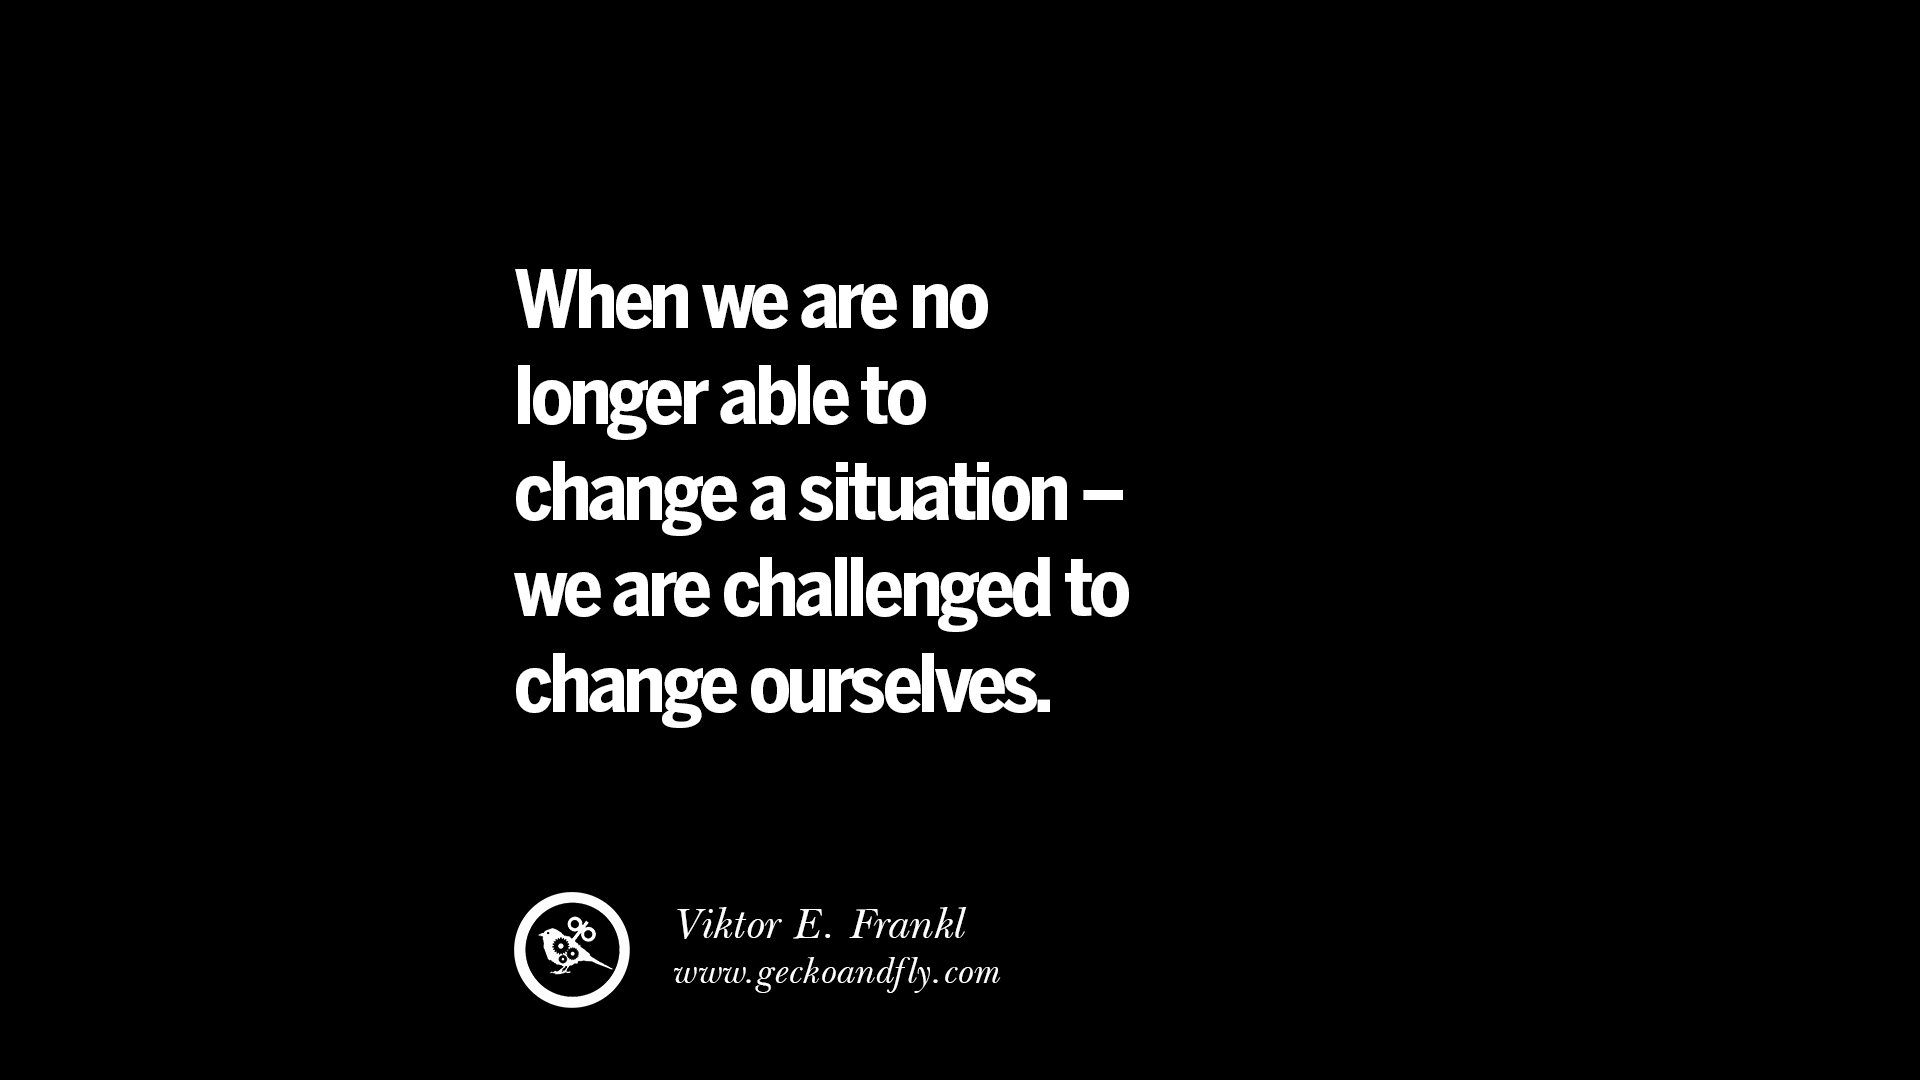 Quotes On Change Glamorous 45 Quotes On Change And Changing Our Attitudes  Geckoandfly 2018